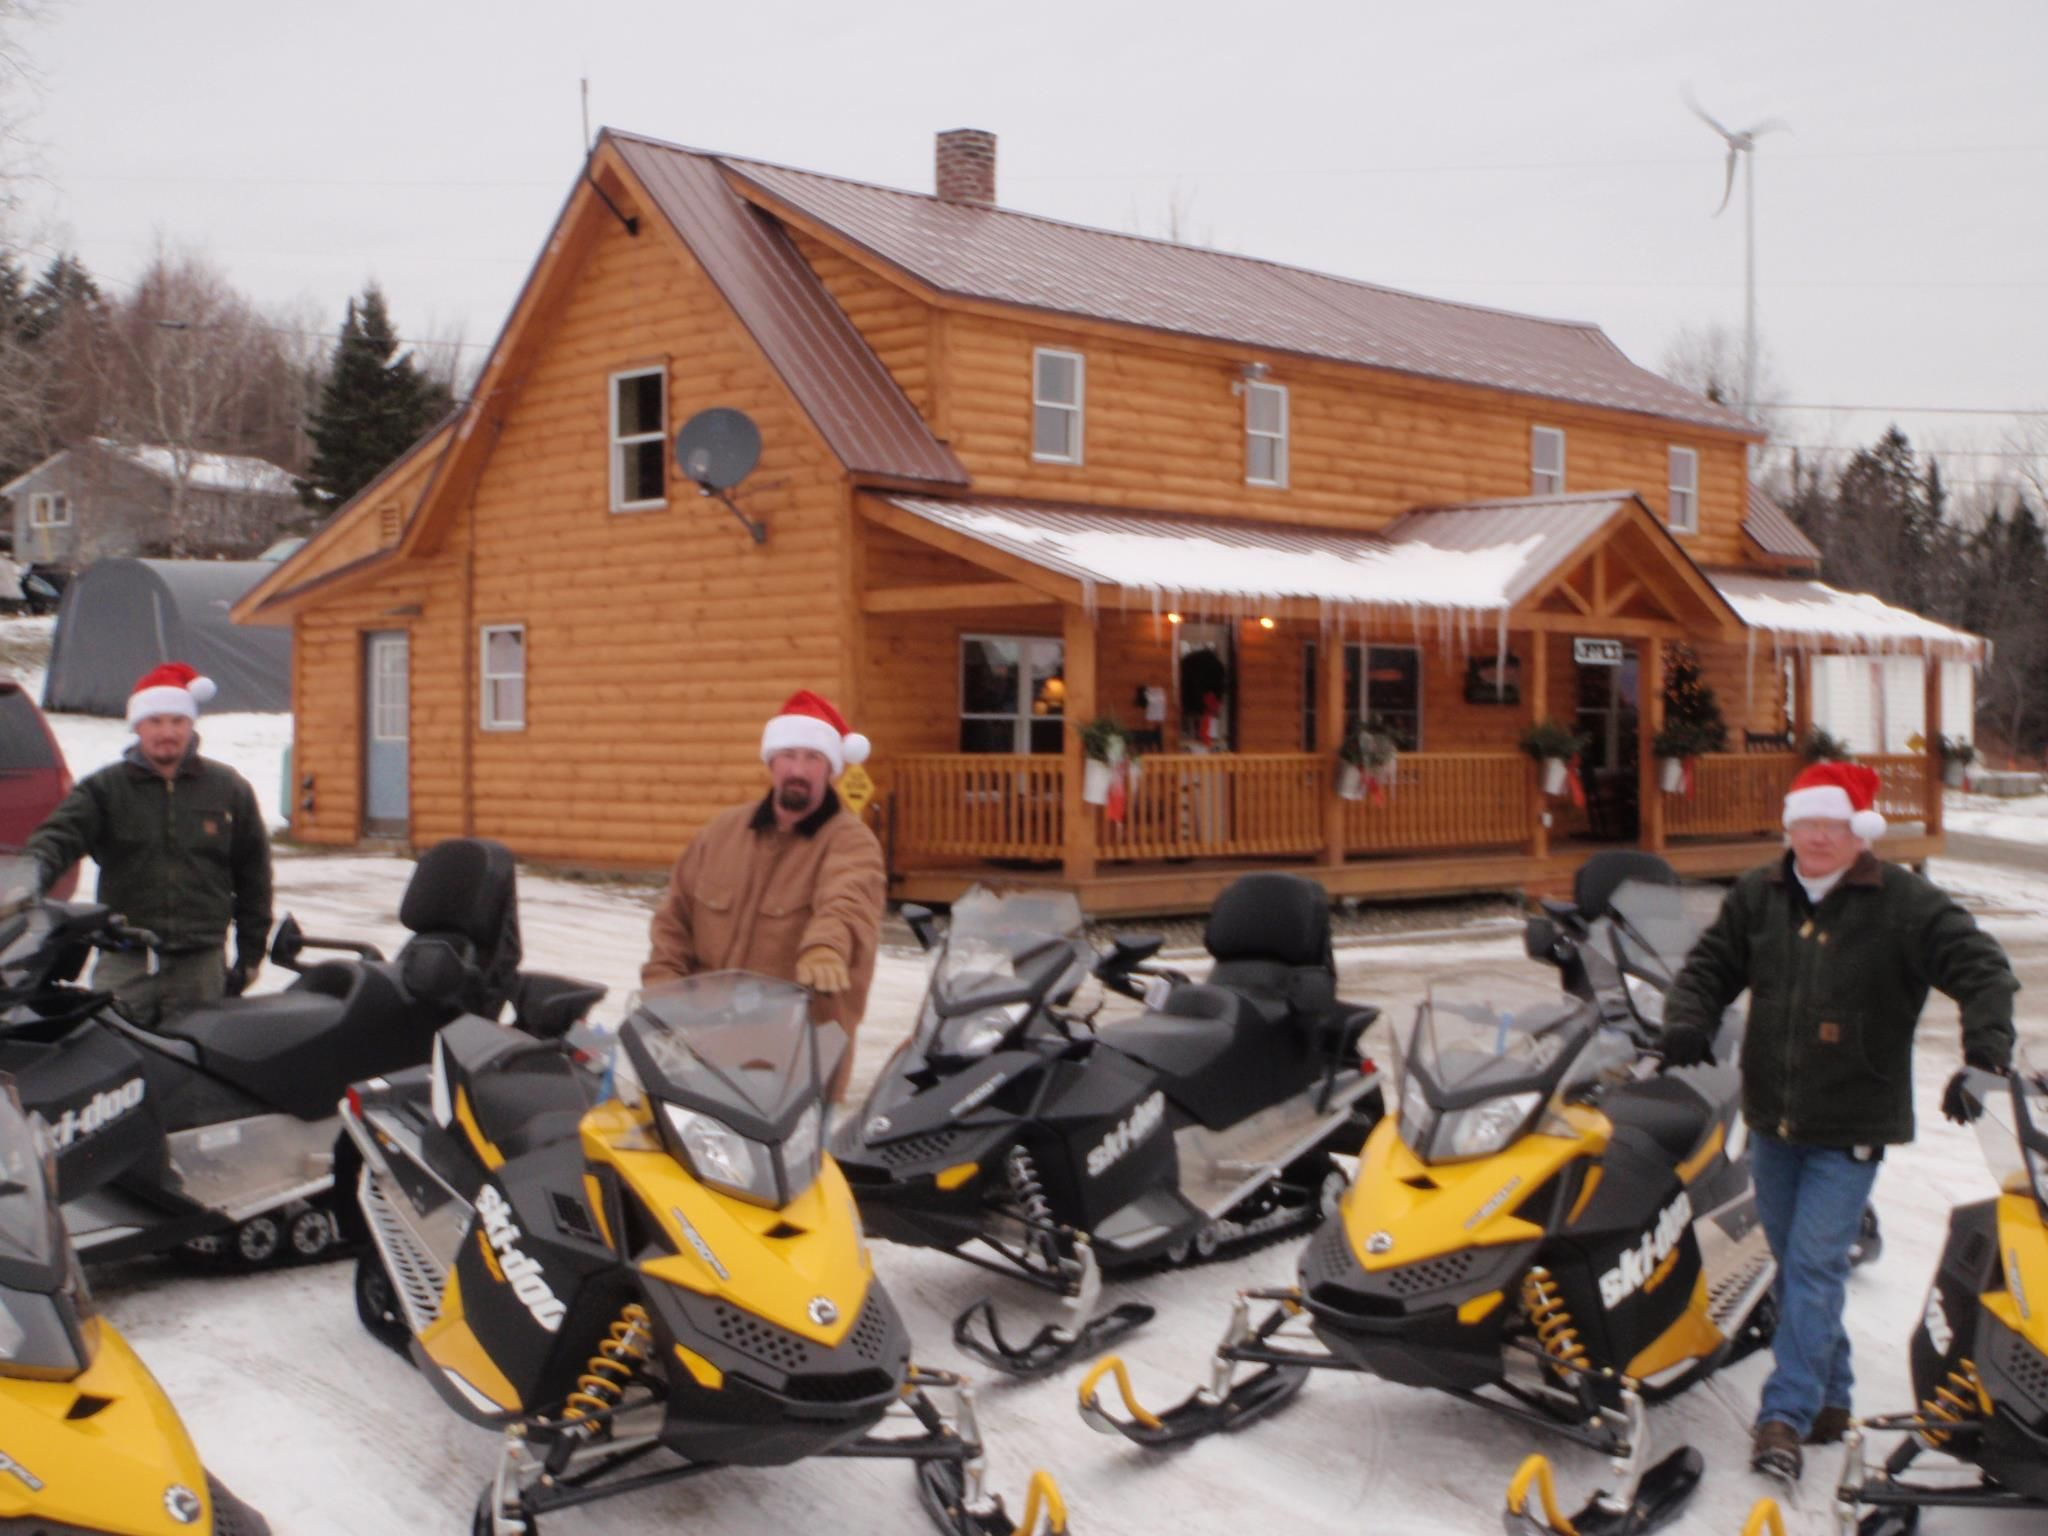 The Day The 2012 Snowmobiles Arrived At The Cabins At Lopstick Pittsburg Nh Http Www Cabinsatlopstick Com Snowmobile Pittsburg Skiing